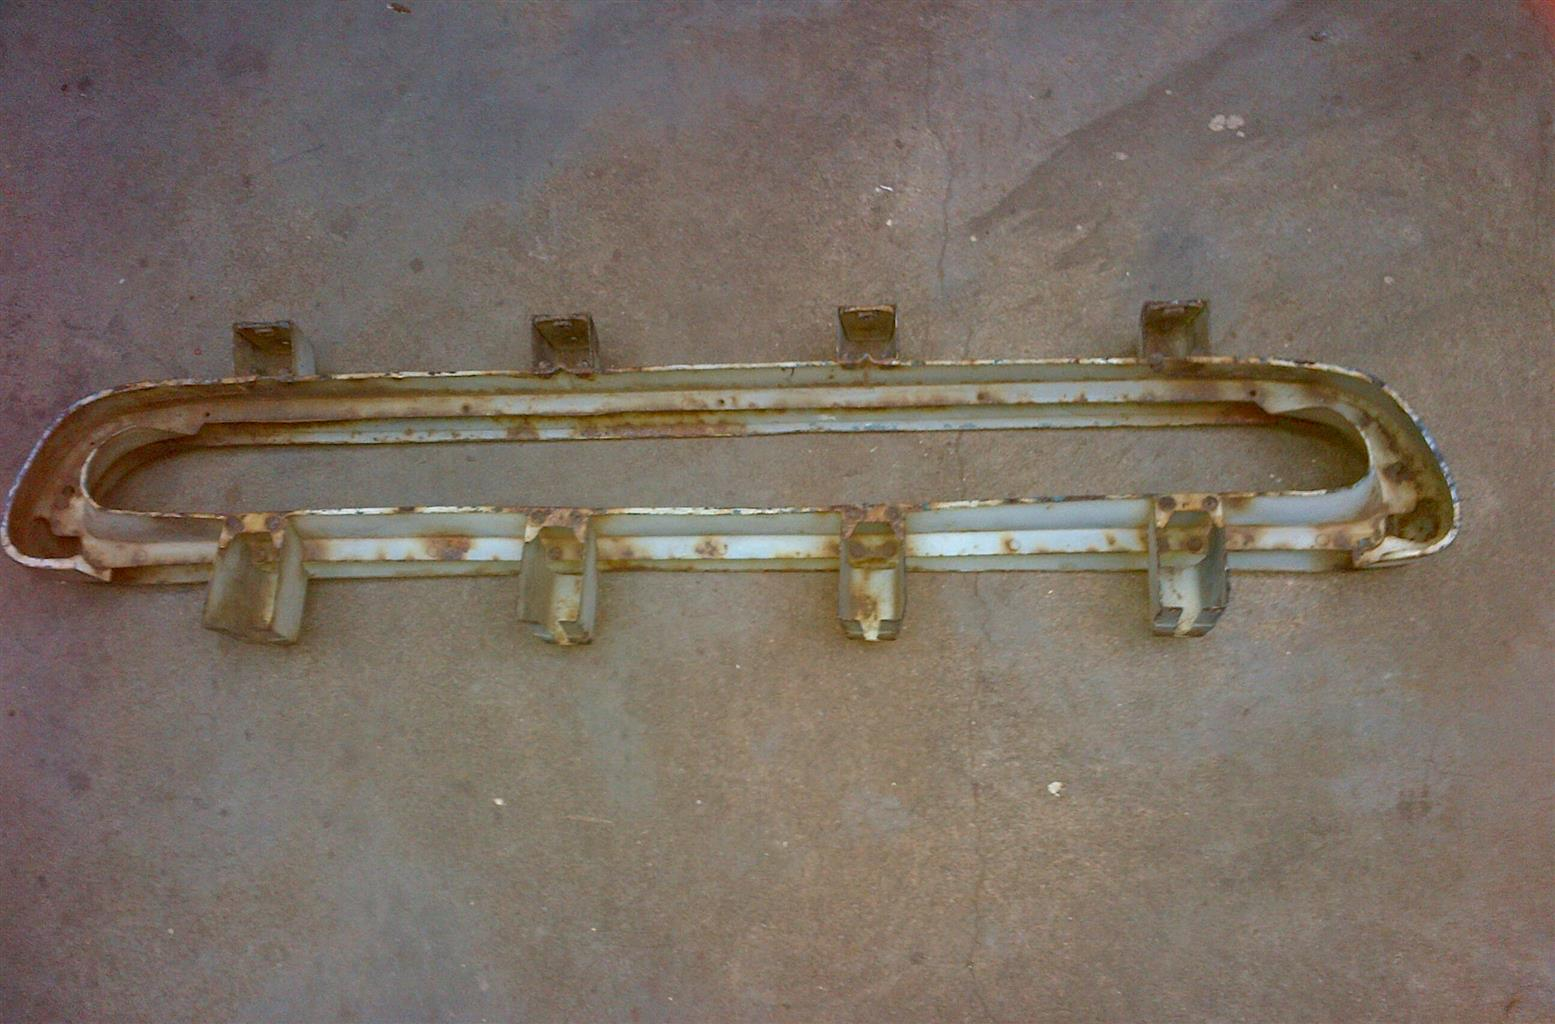 1957 chev pickup grill for sale